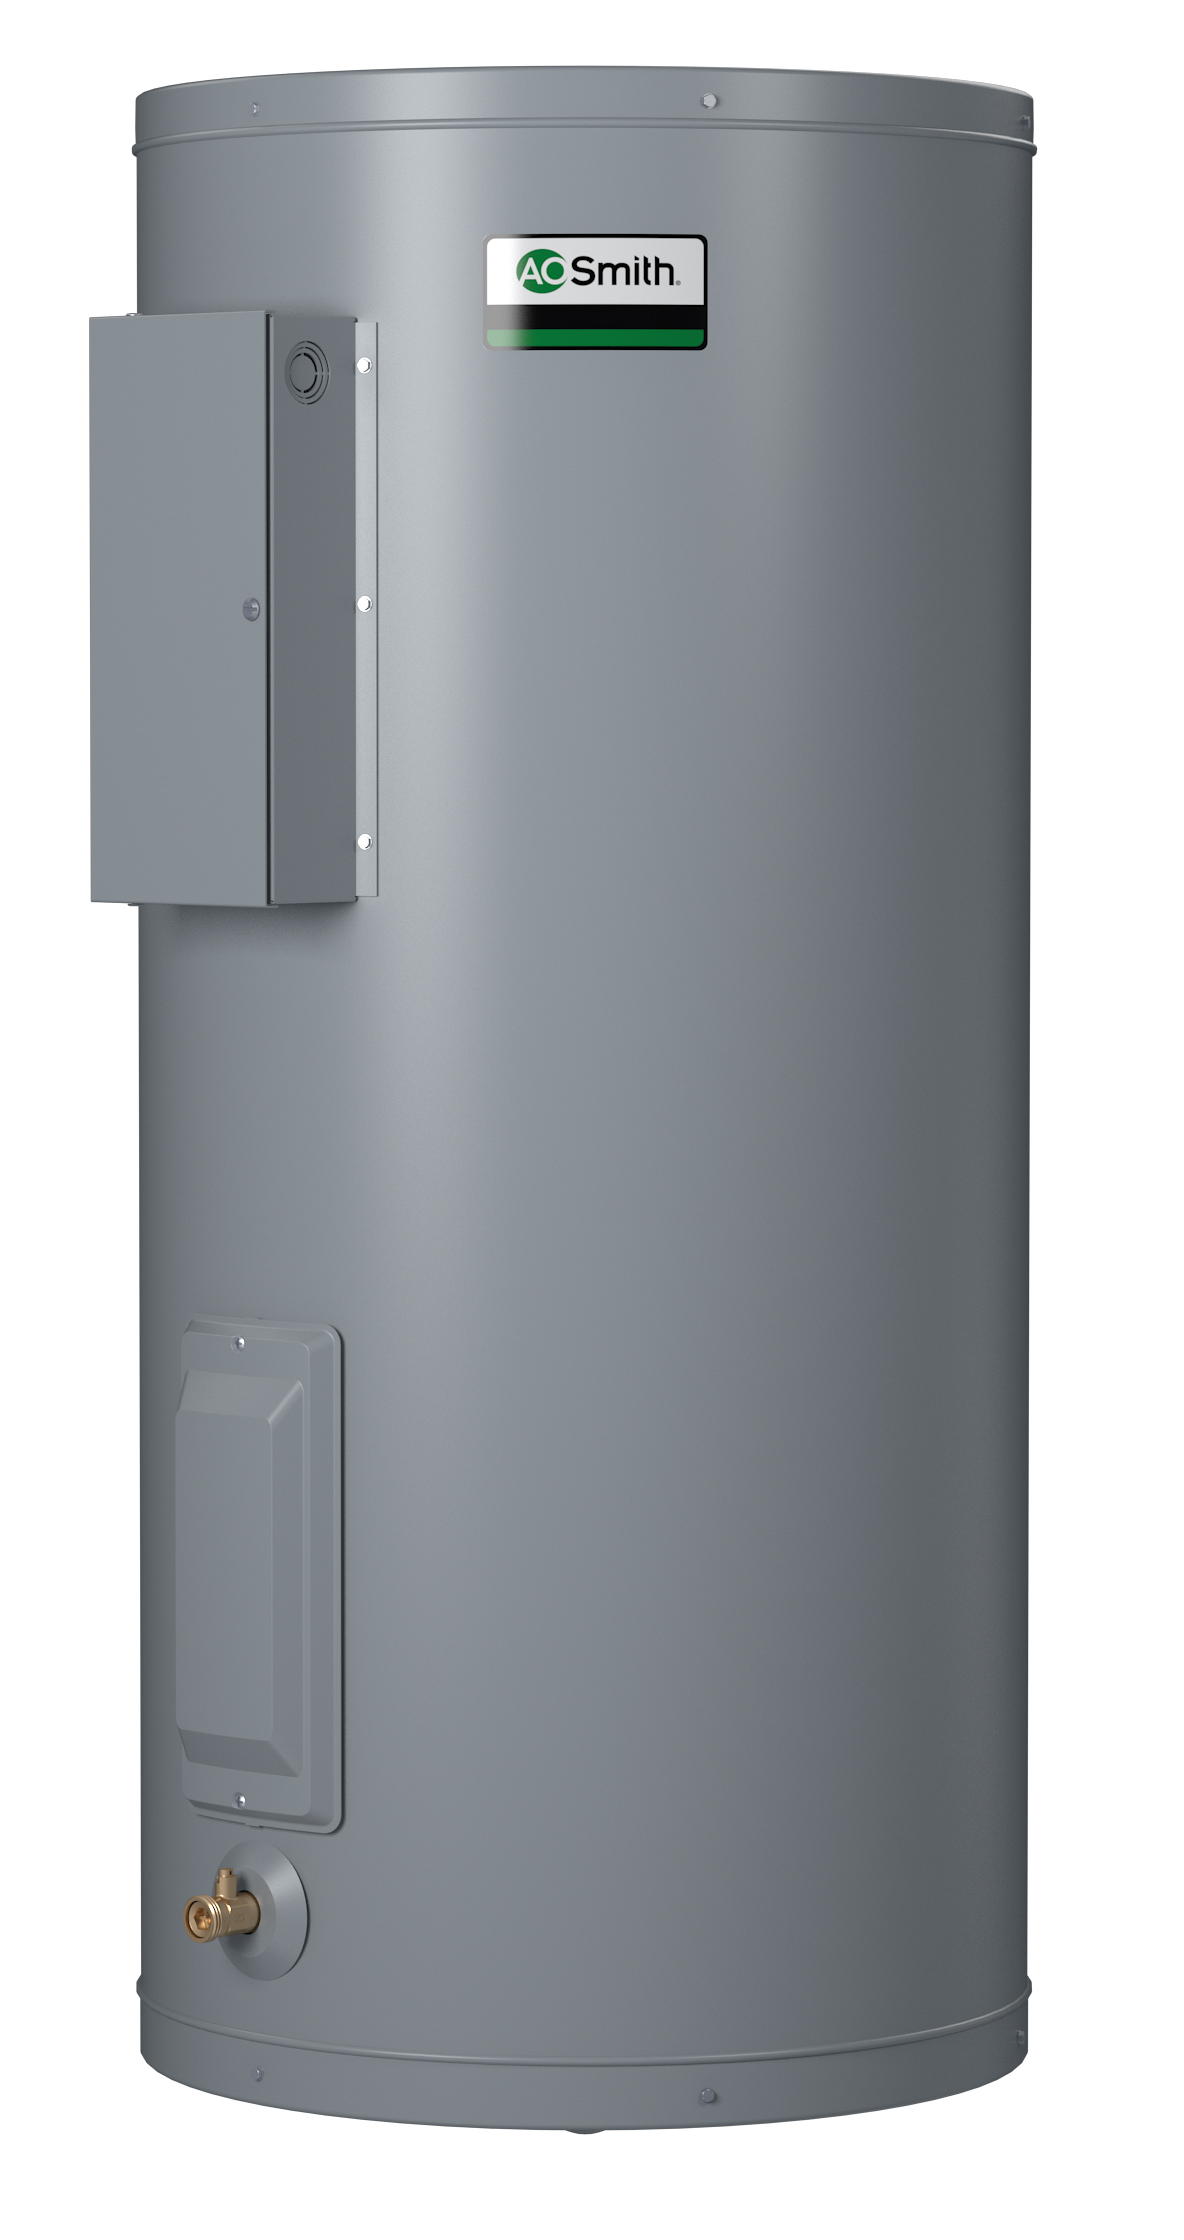 AO Smith DEL Water Heater Electric - Short